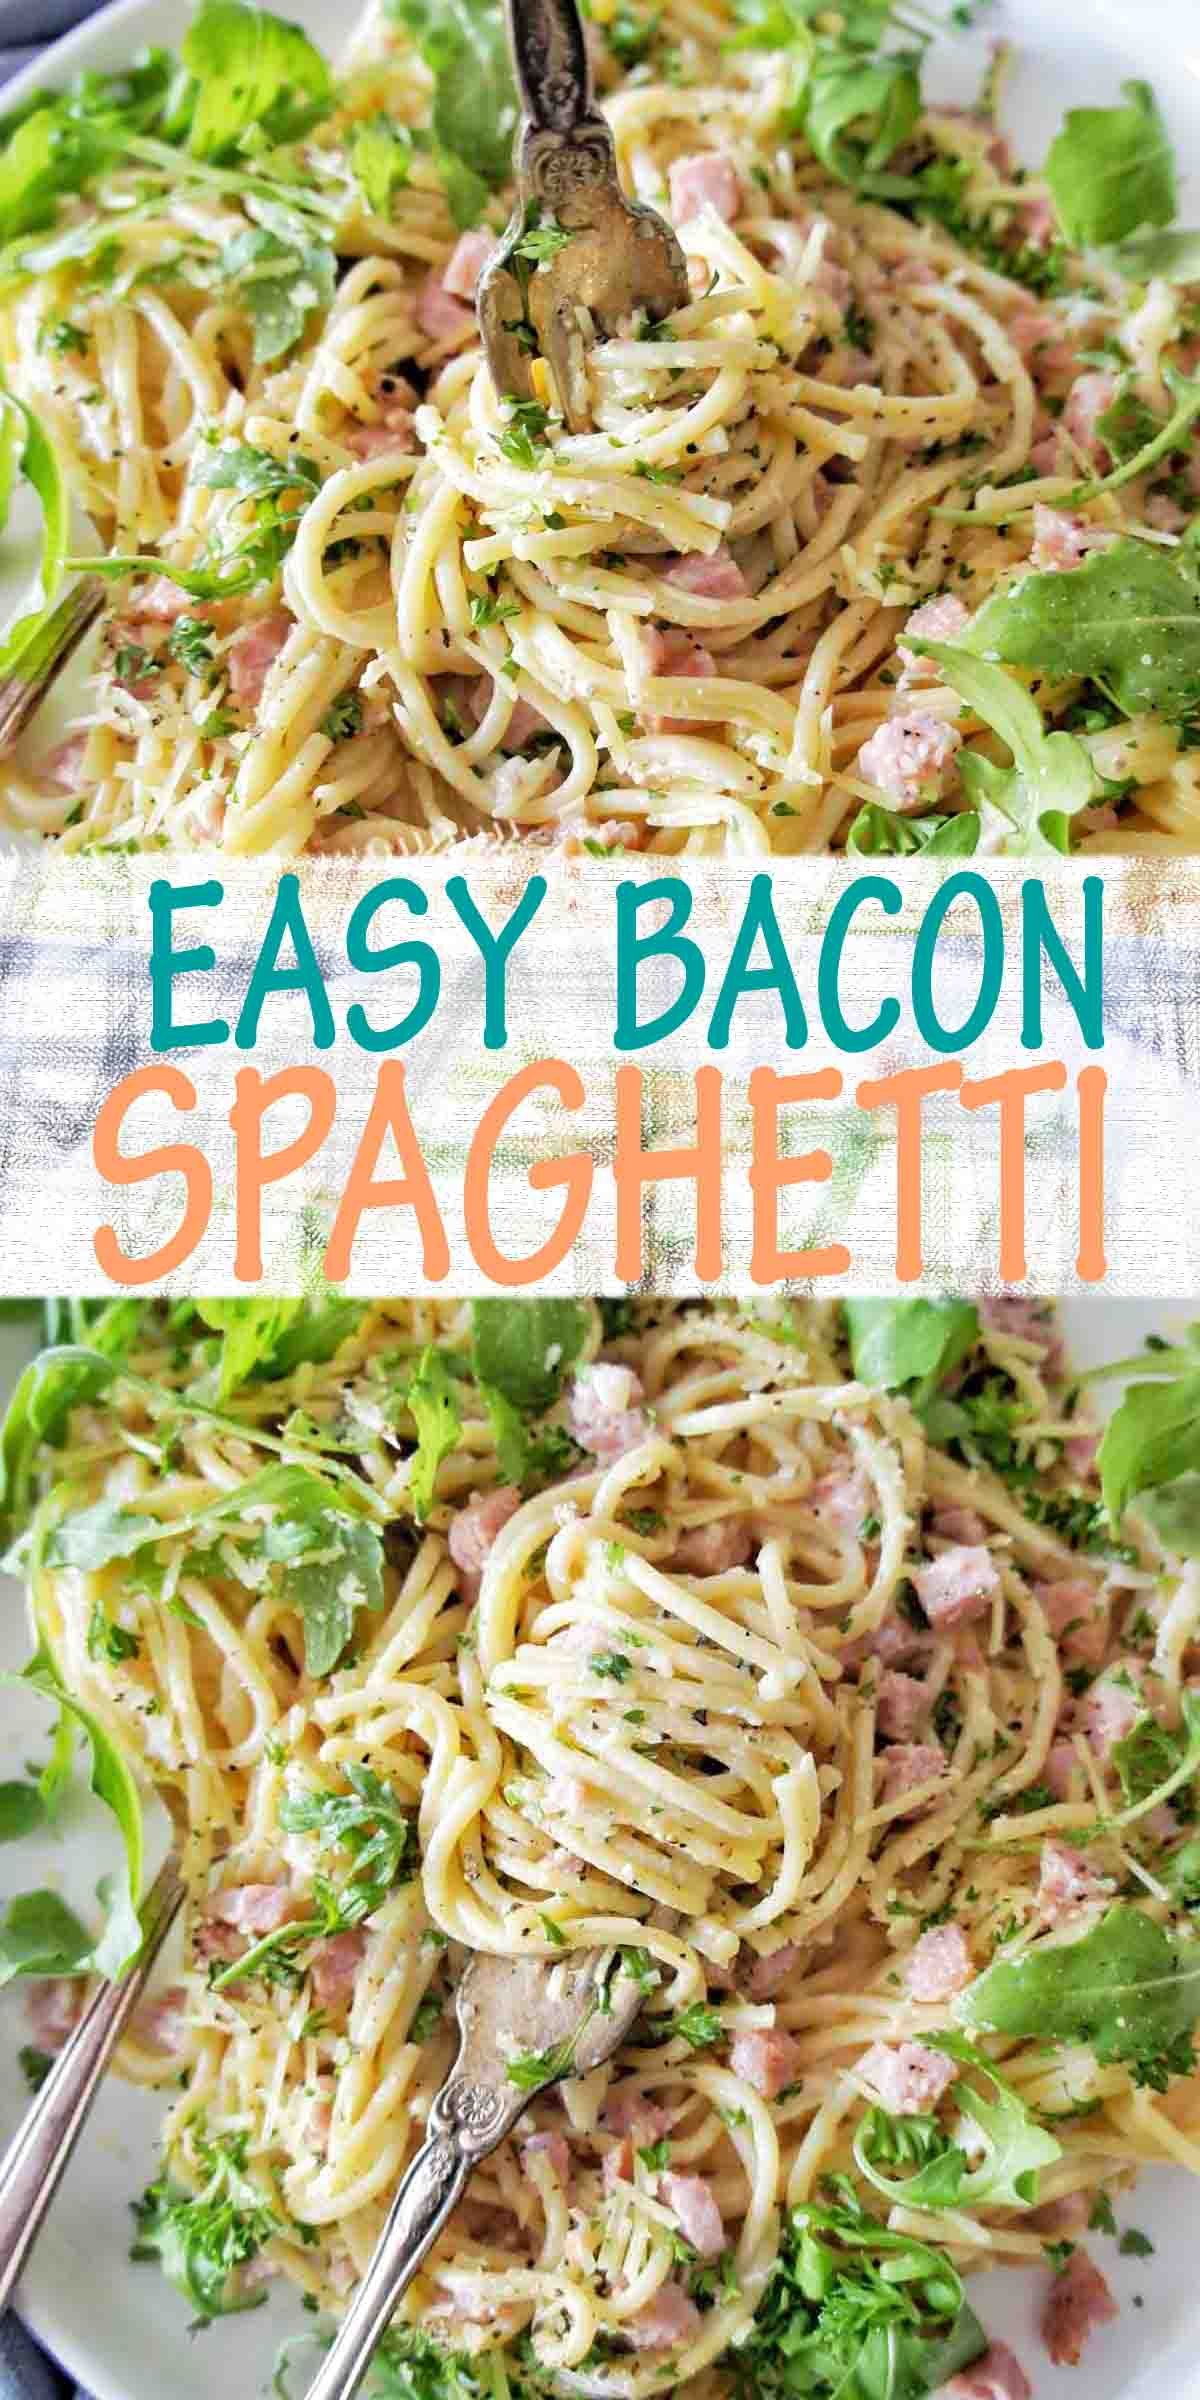 Easy Bacon Spaghetti with text over lay